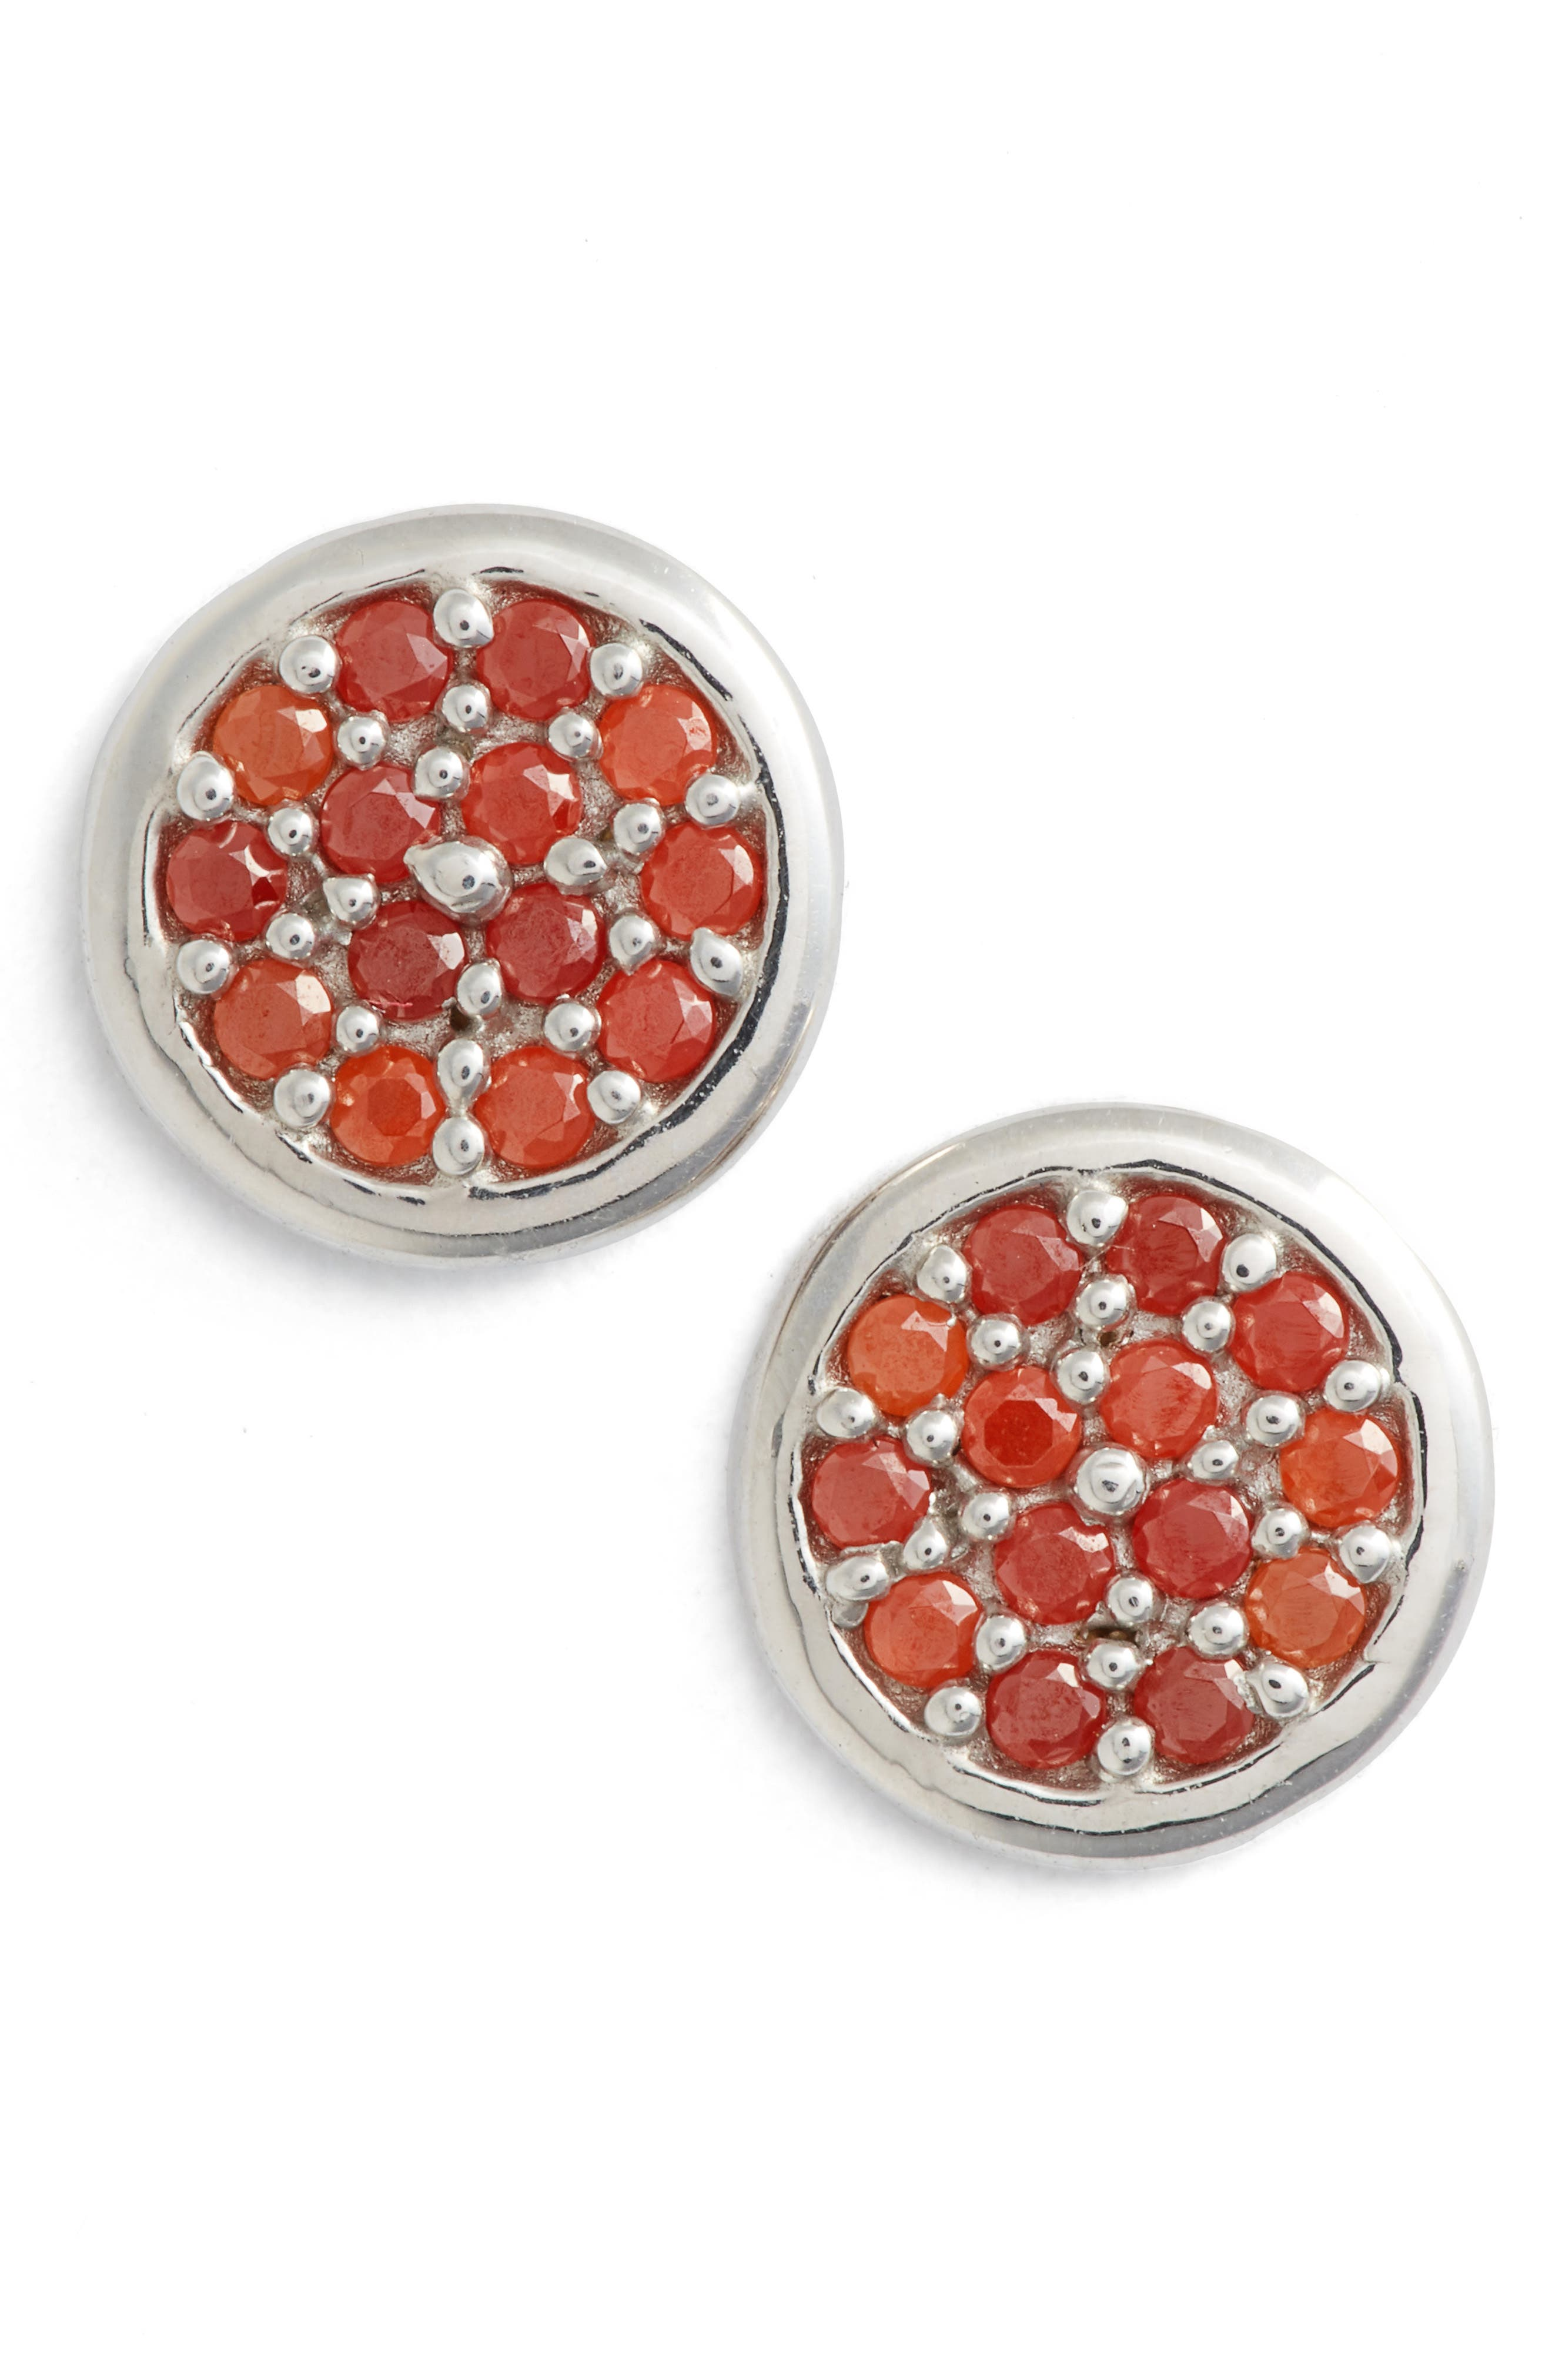 Cubic Zirconia Stud Earrings,                         Main,                         color, CORAL/ SILVER